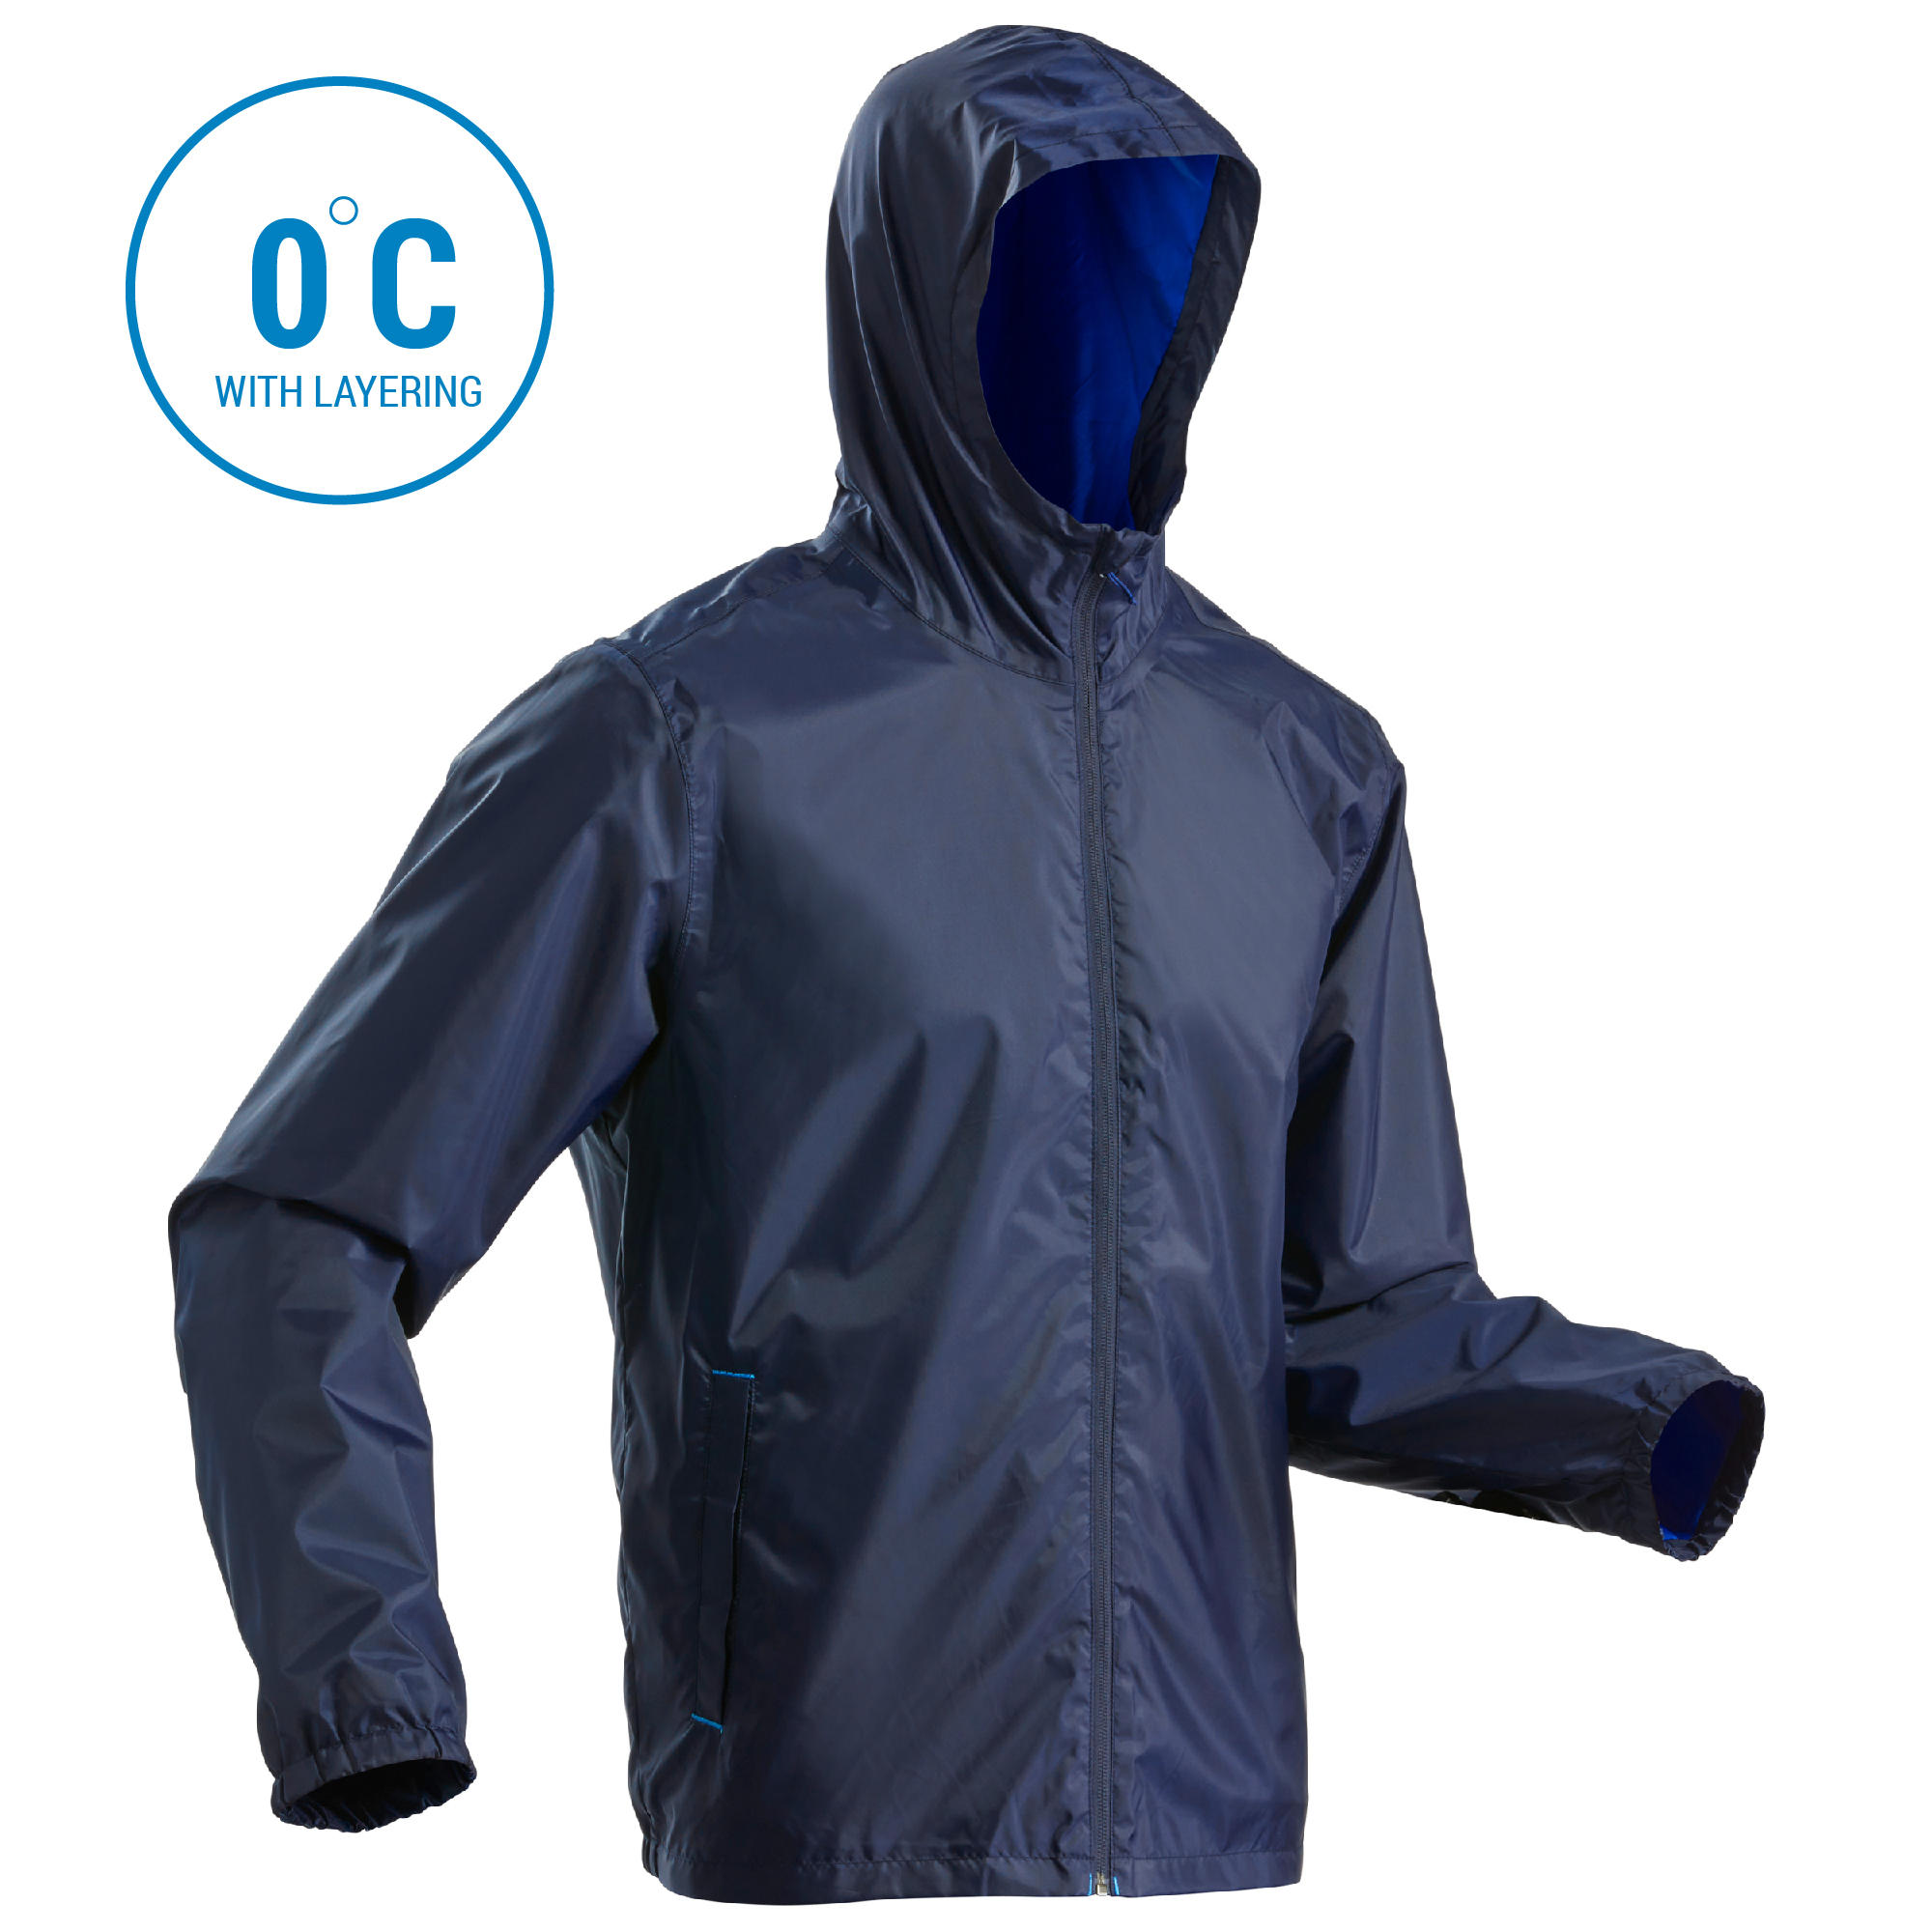 Men's Rain Jacket SH100 (Warm) - Navy blue